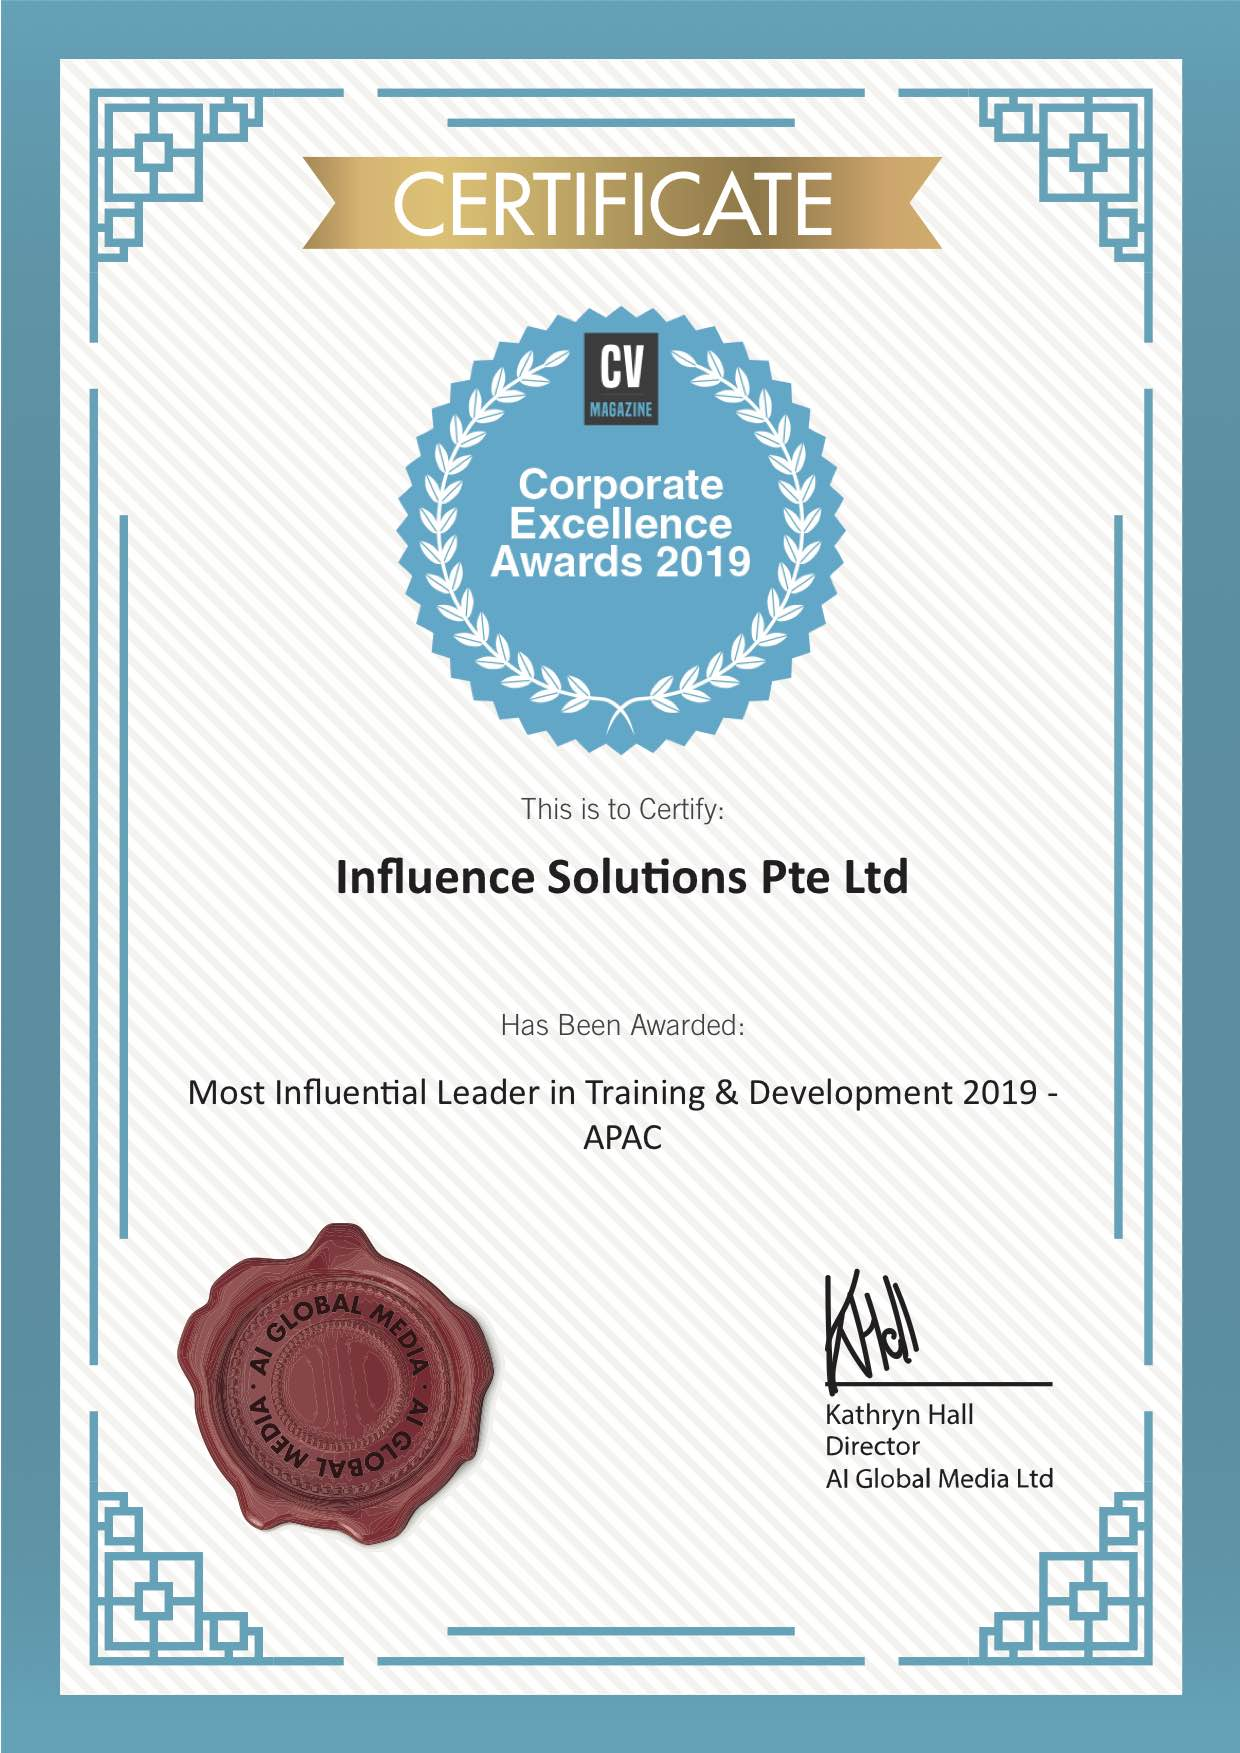 Most Influential Training and Development Company in Asia Pacific